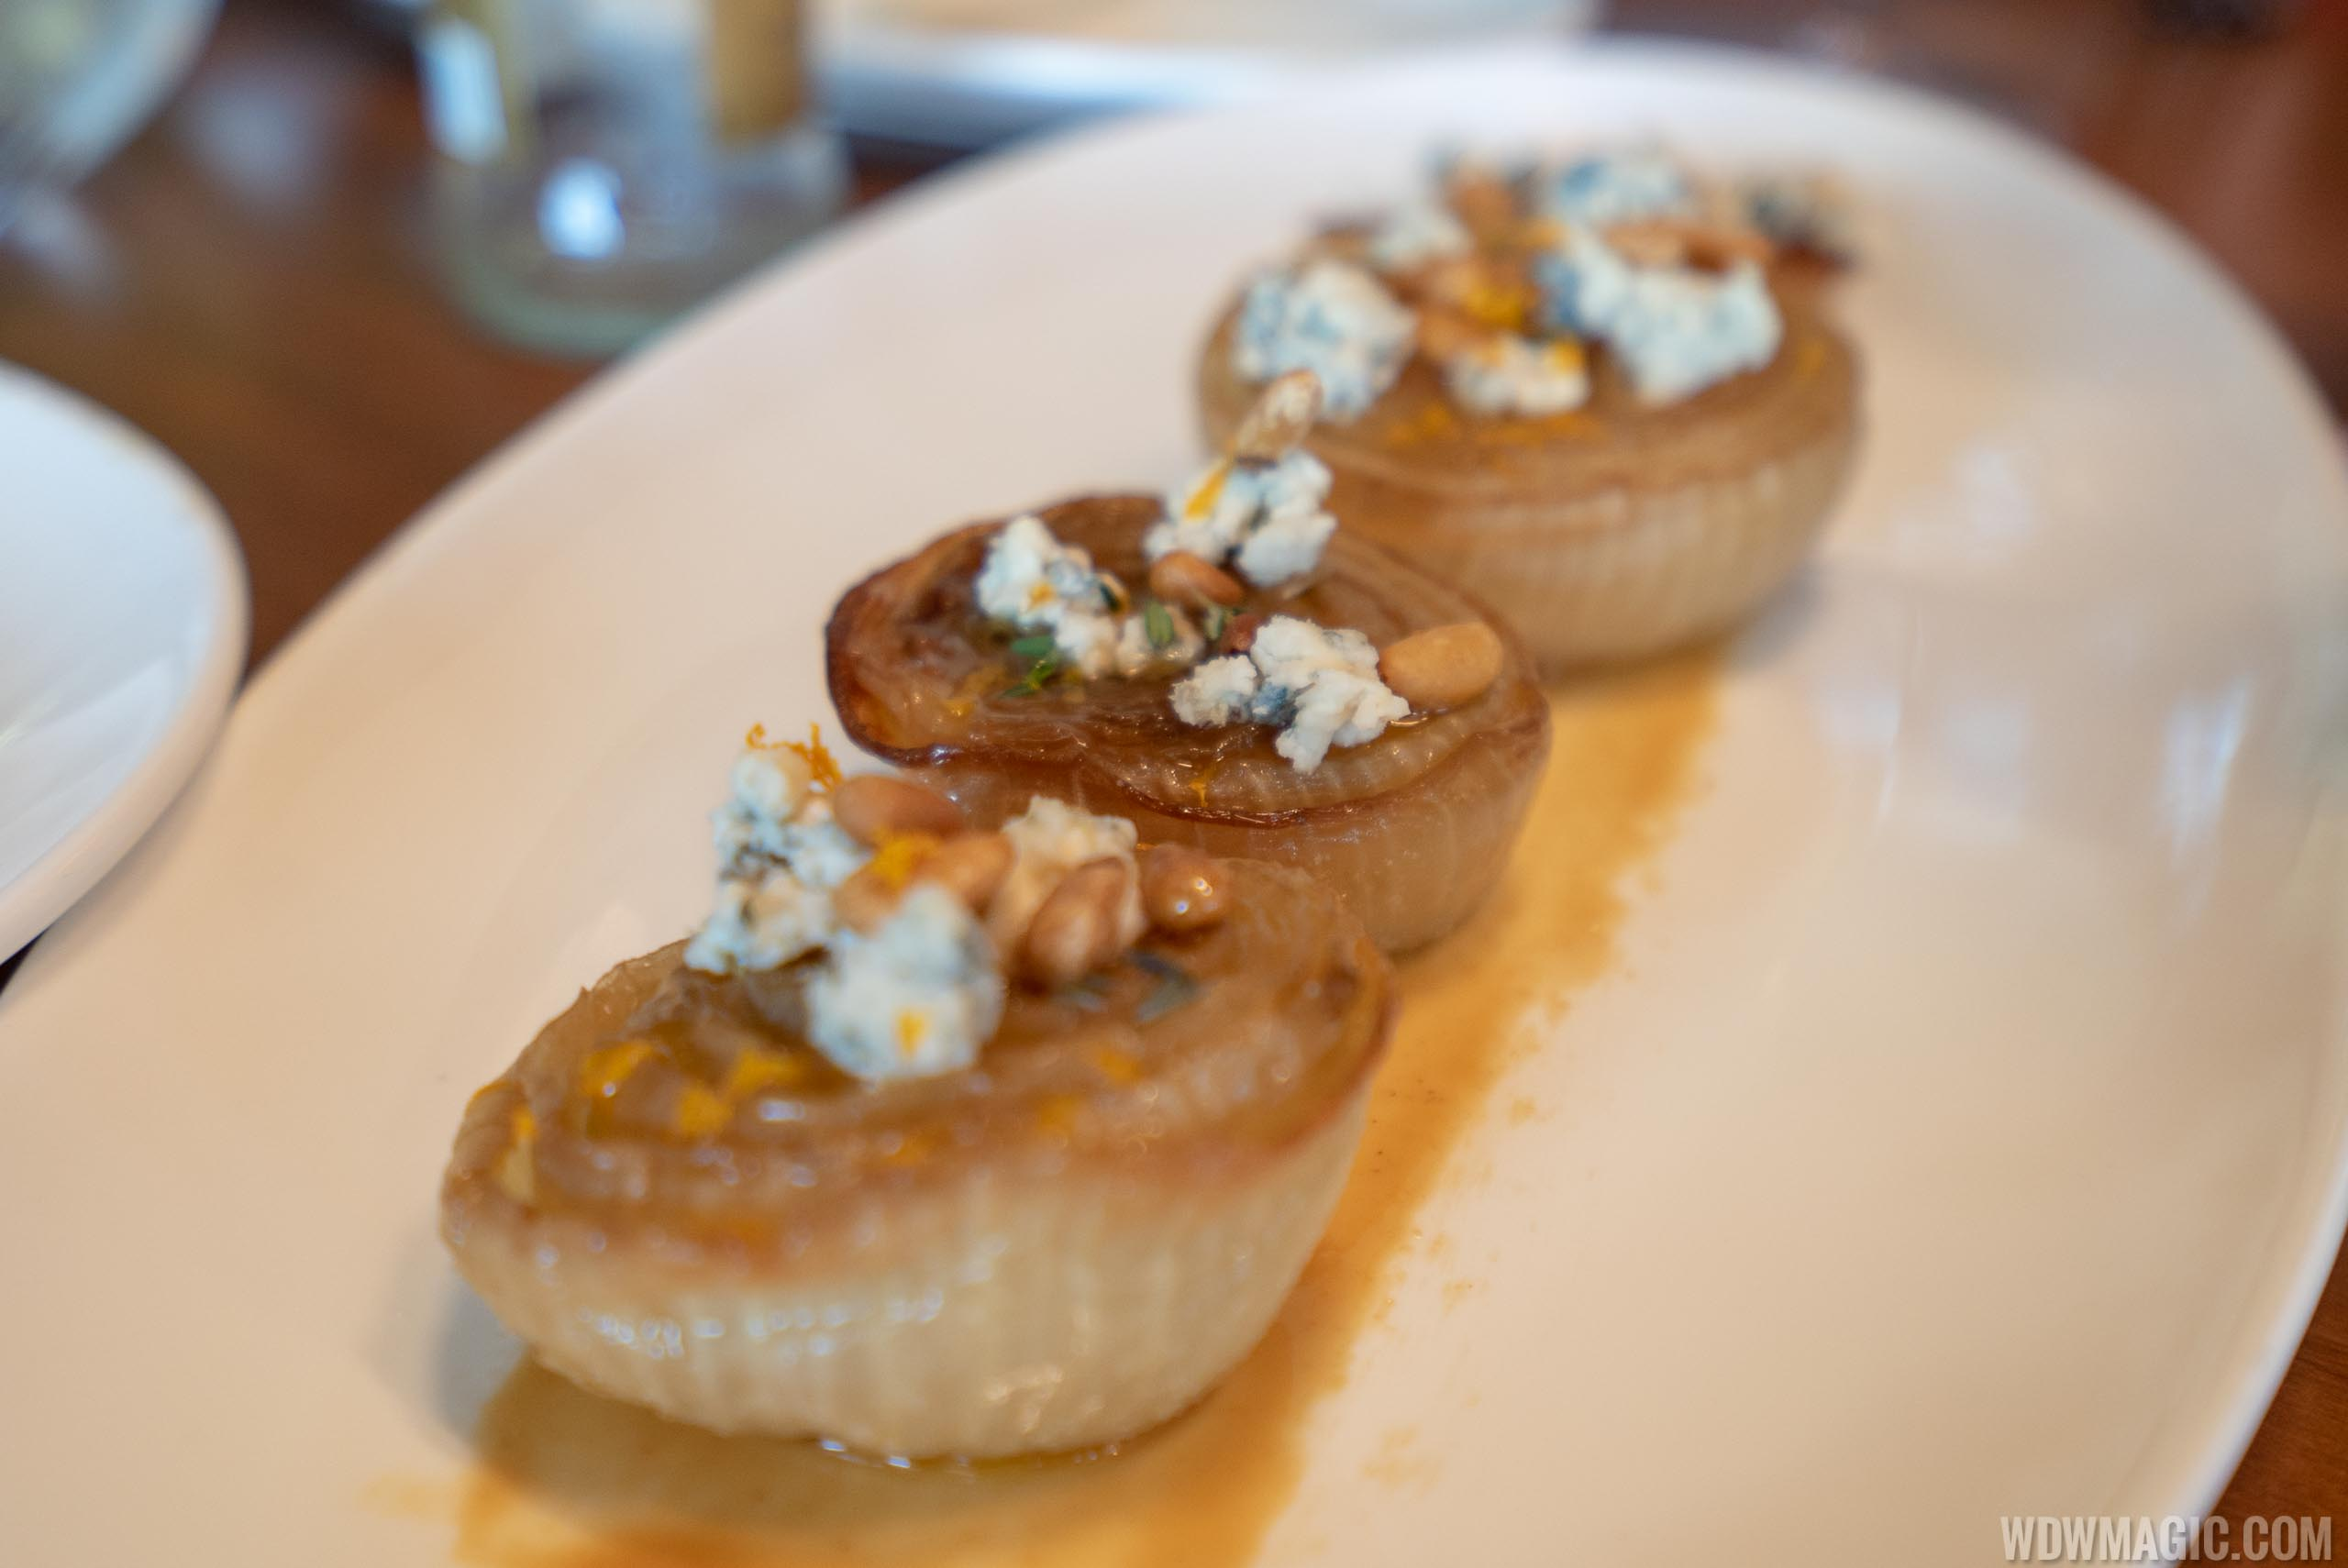 Chef's tasting menu: José's Way - Roasted sweet onions, pine nuts, and La Peral blue cheese